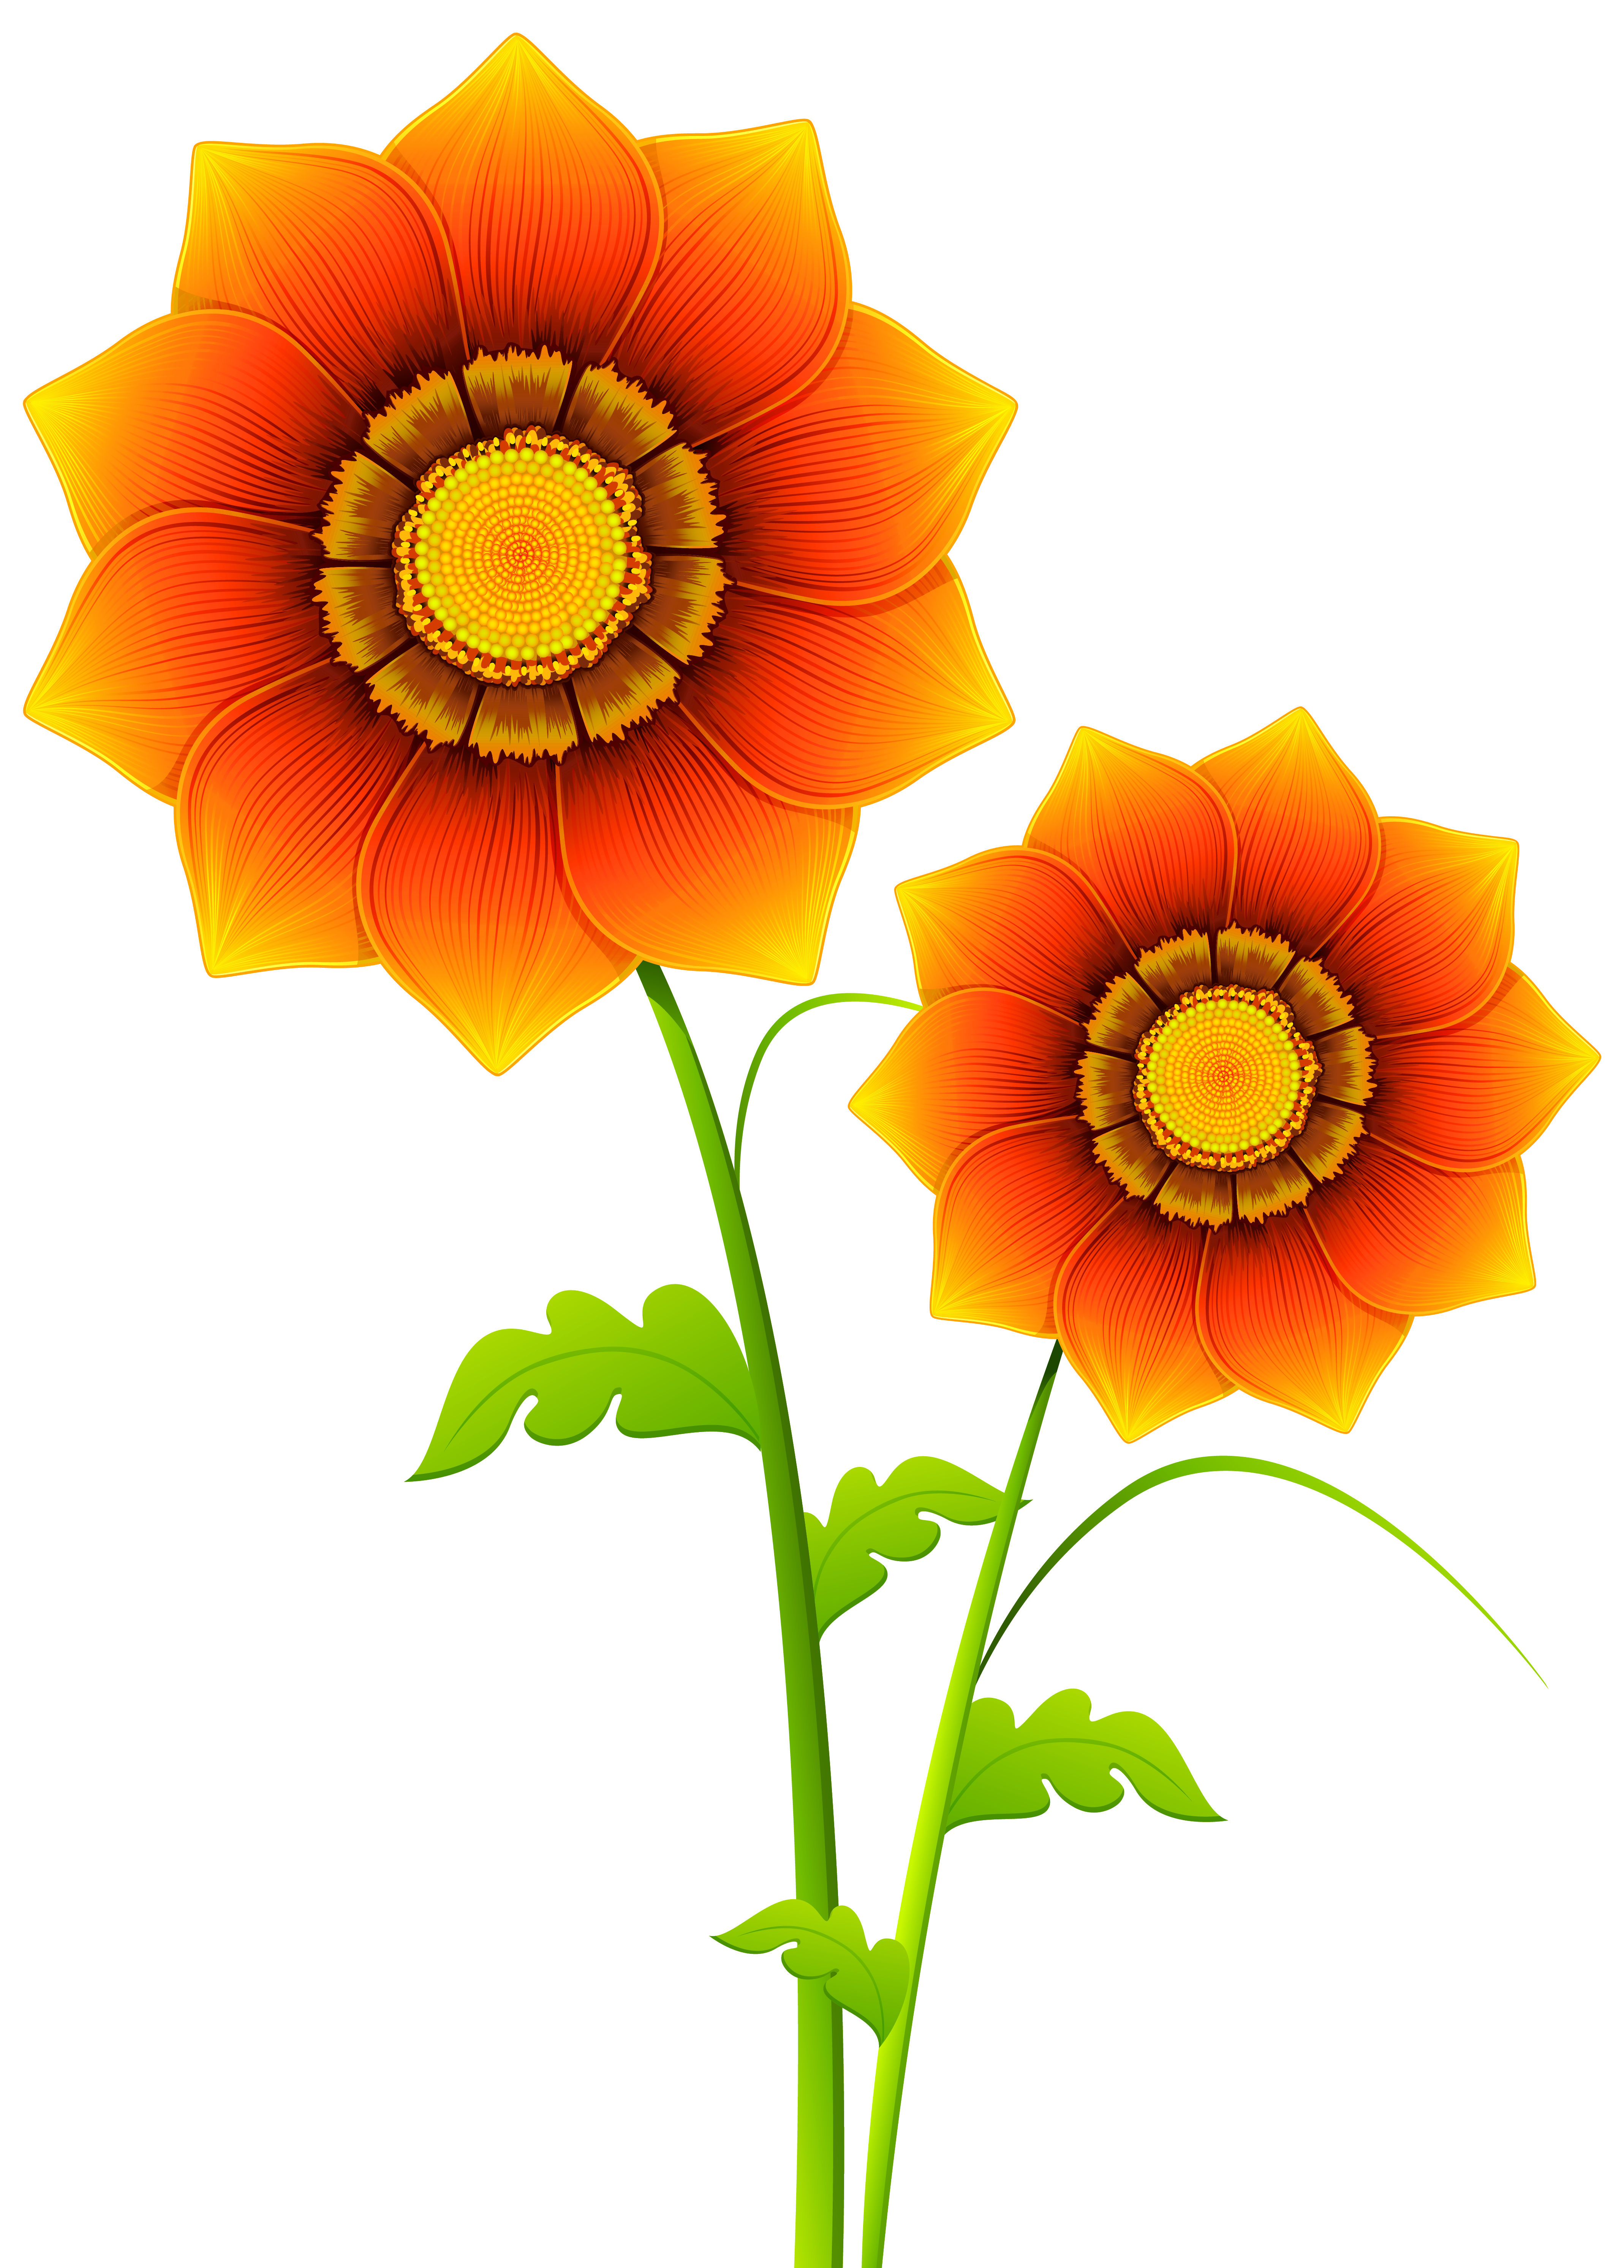 Yellow Flower clipart transparent Yopriceville full size Flowers Transparent